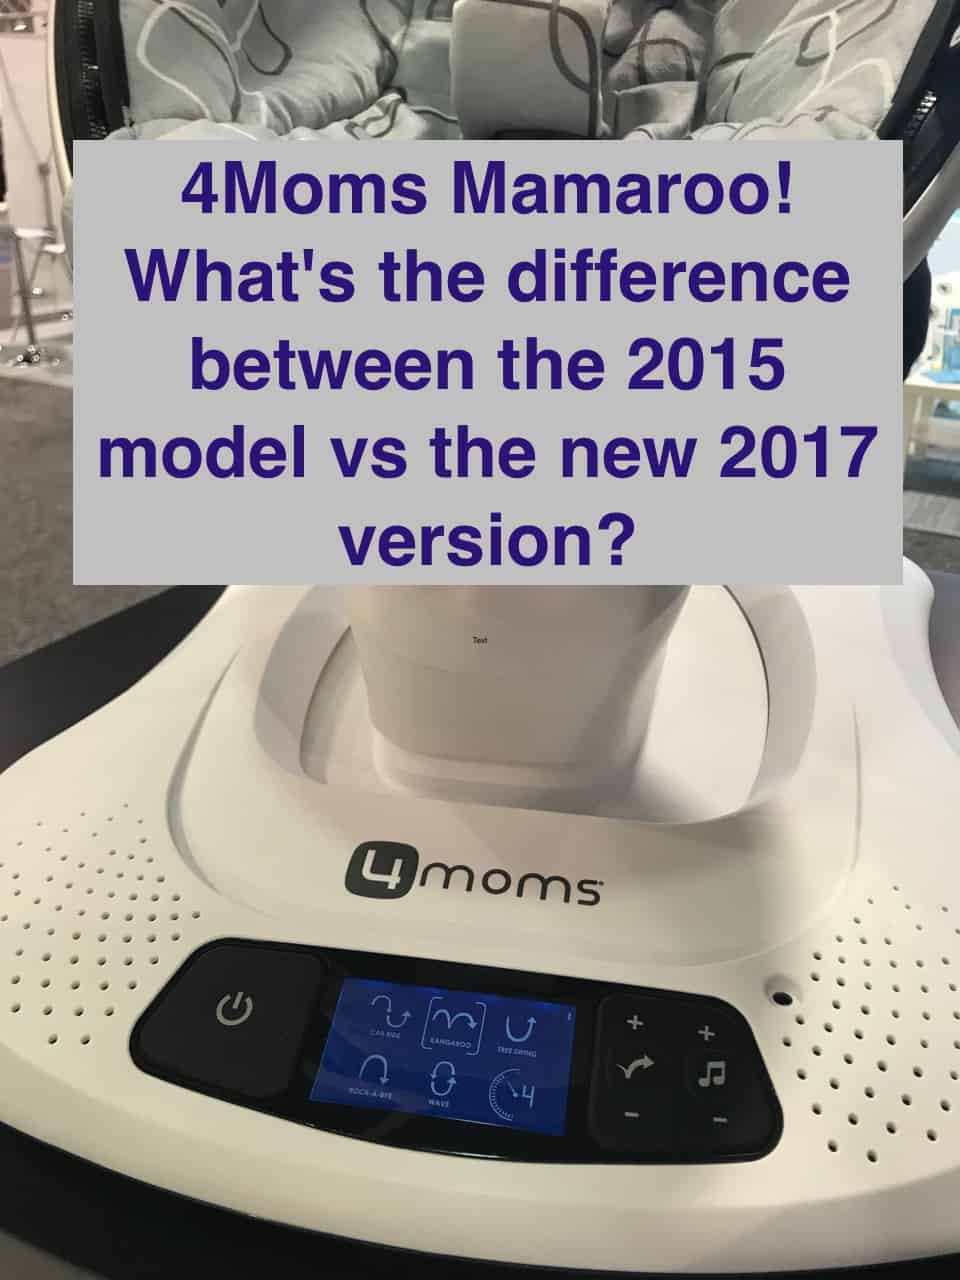 MamaRoo: What's the difference between the 2015 model vs the new 2017 version?